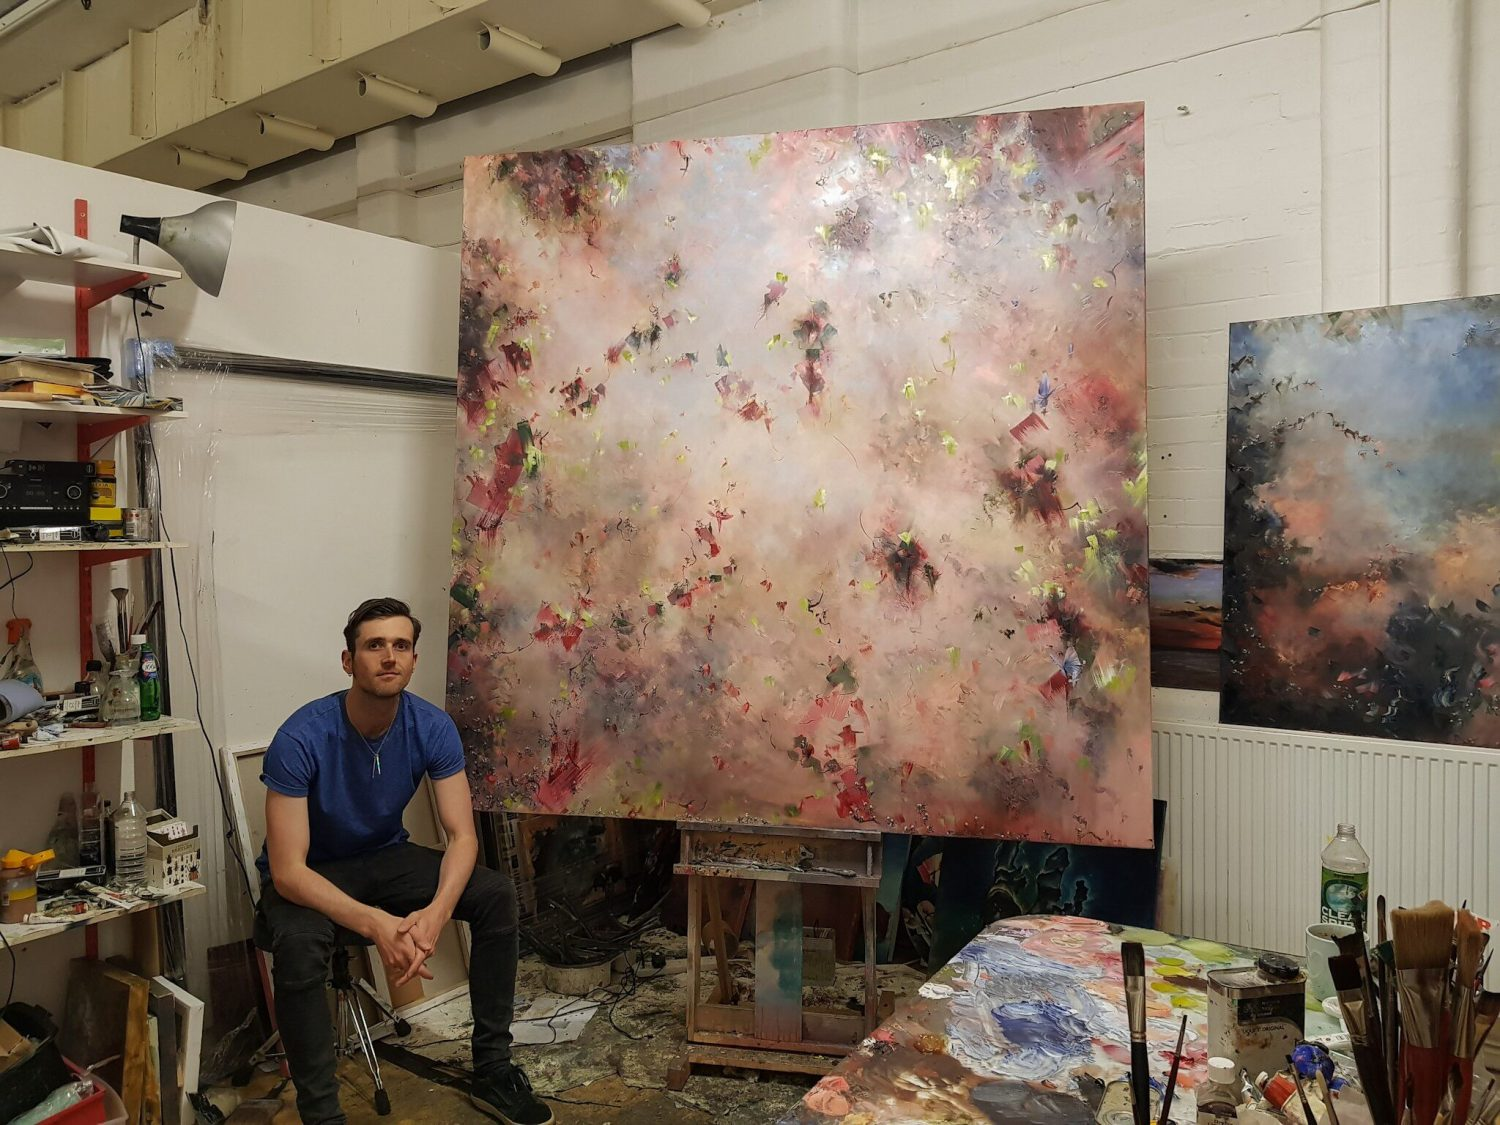 Chris has swapped drums for canvas and stage for studio